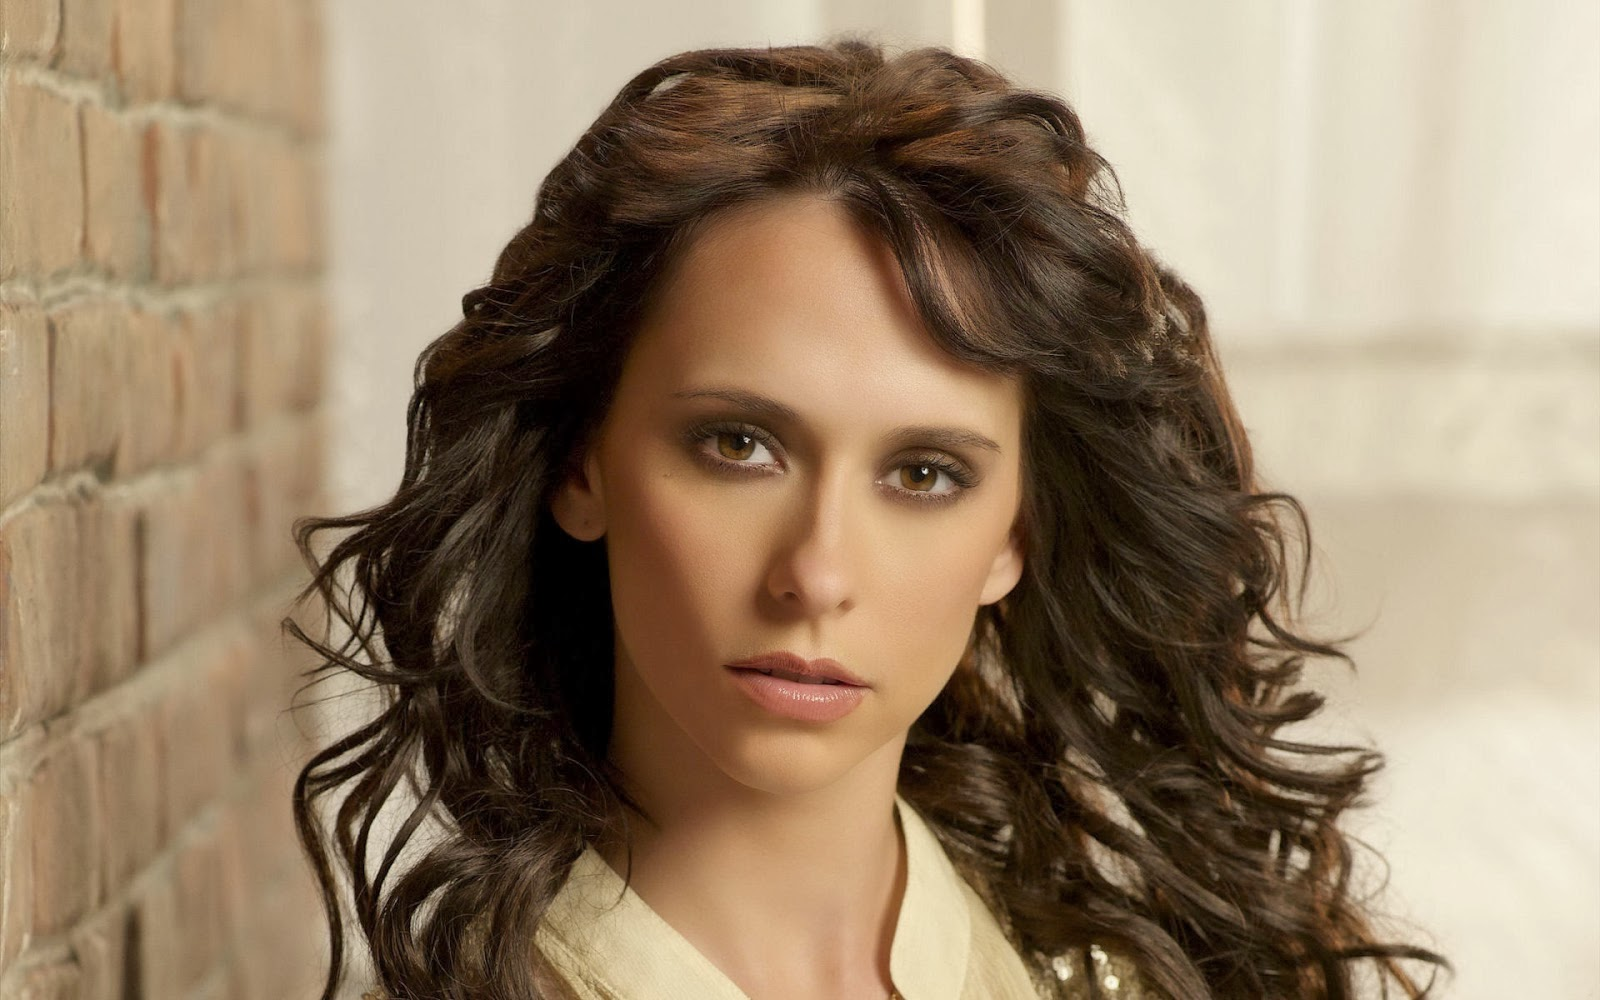 Wallpaper Hd Jennifer Love : Jennifer Love Hewitt Hot HD Wallpapers - HD Wallpapers Blog